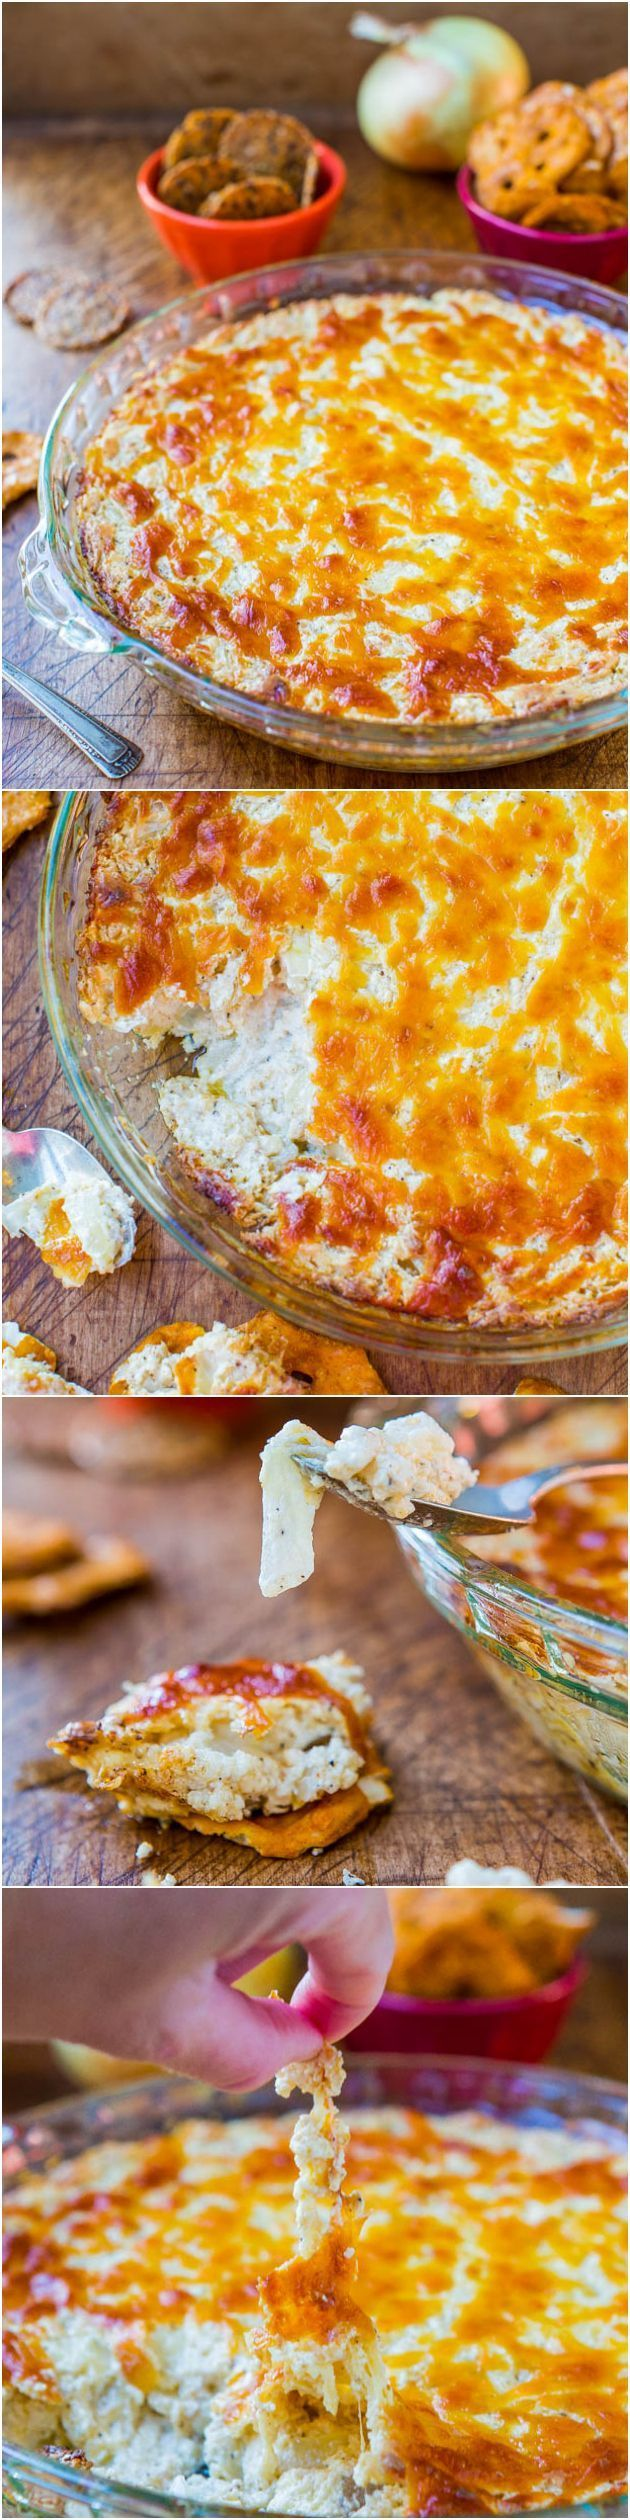 Creamy Baked Double Cheese and Sweet Onion Dip - Cheesy, irresistible dip that everyone loves! Great for parties or Superbowl! Easy recipe at averiecooks.com